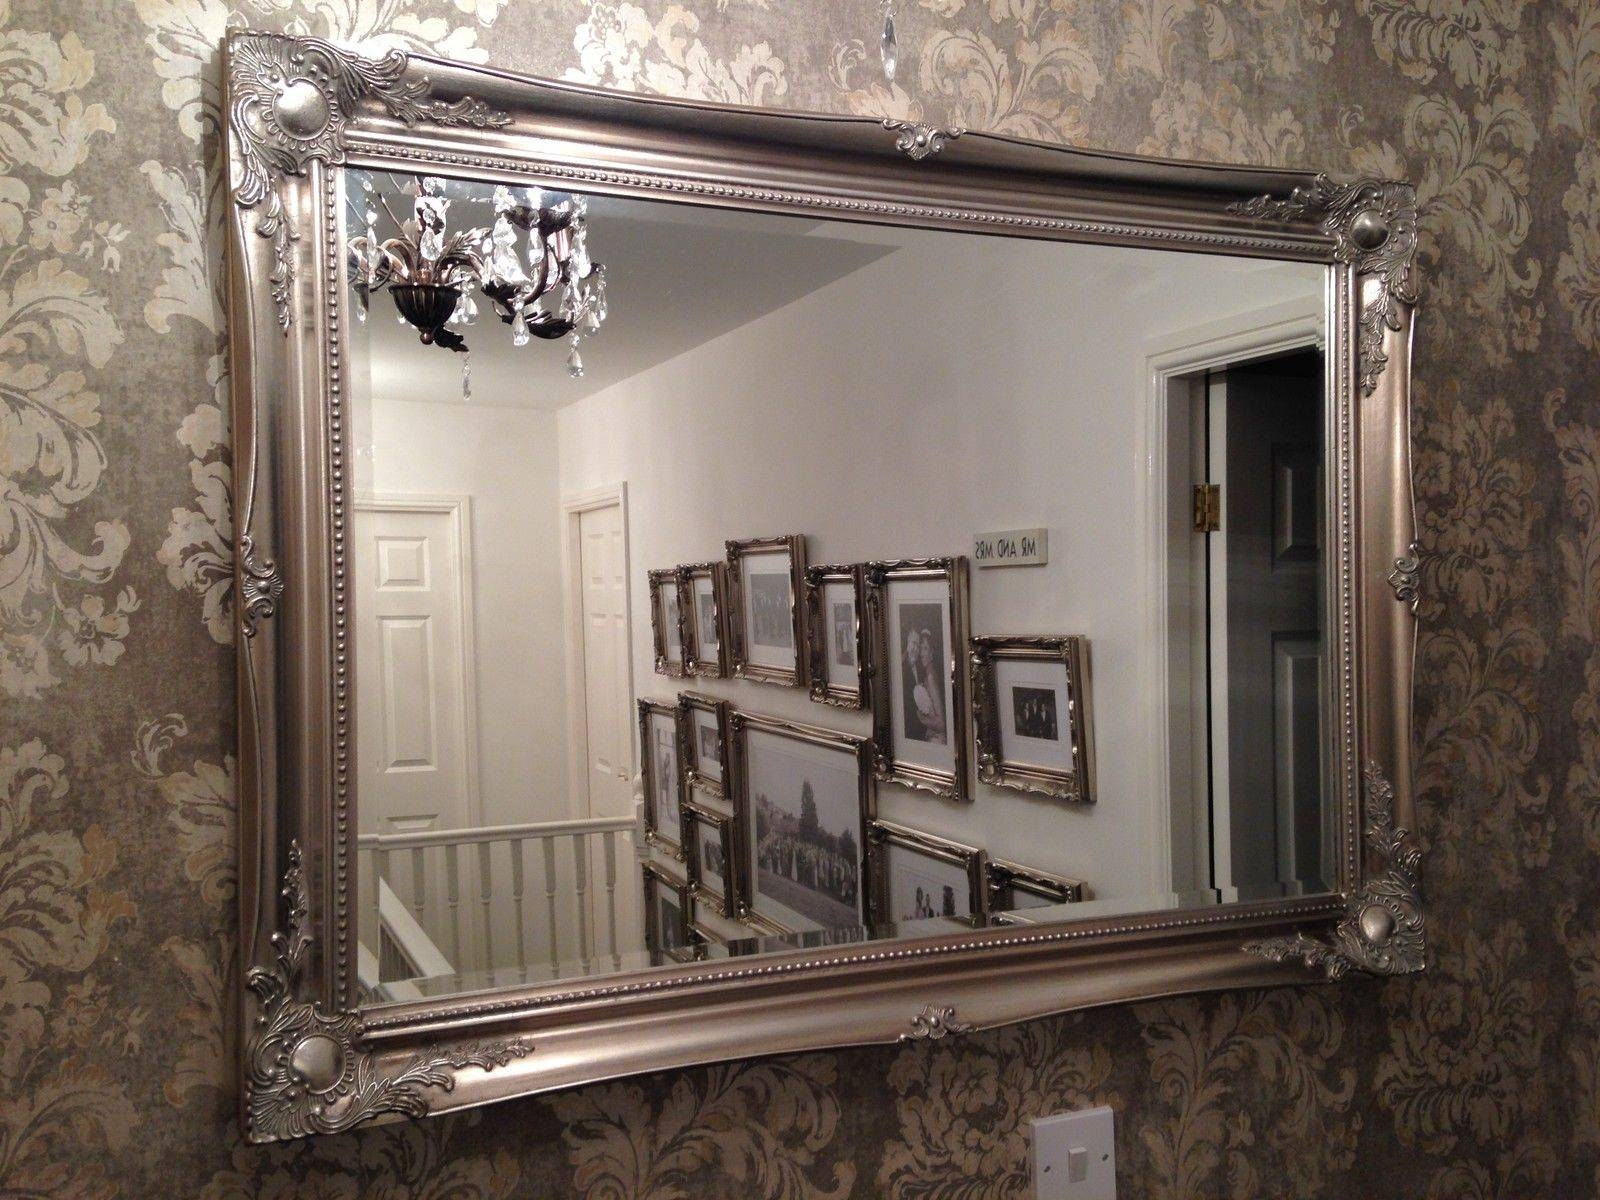 Old Fashioned Wall Mirrors Antique Mirror Wall Covering Vintage for Antiqued Wall Mirrors (Image 19 of 25)